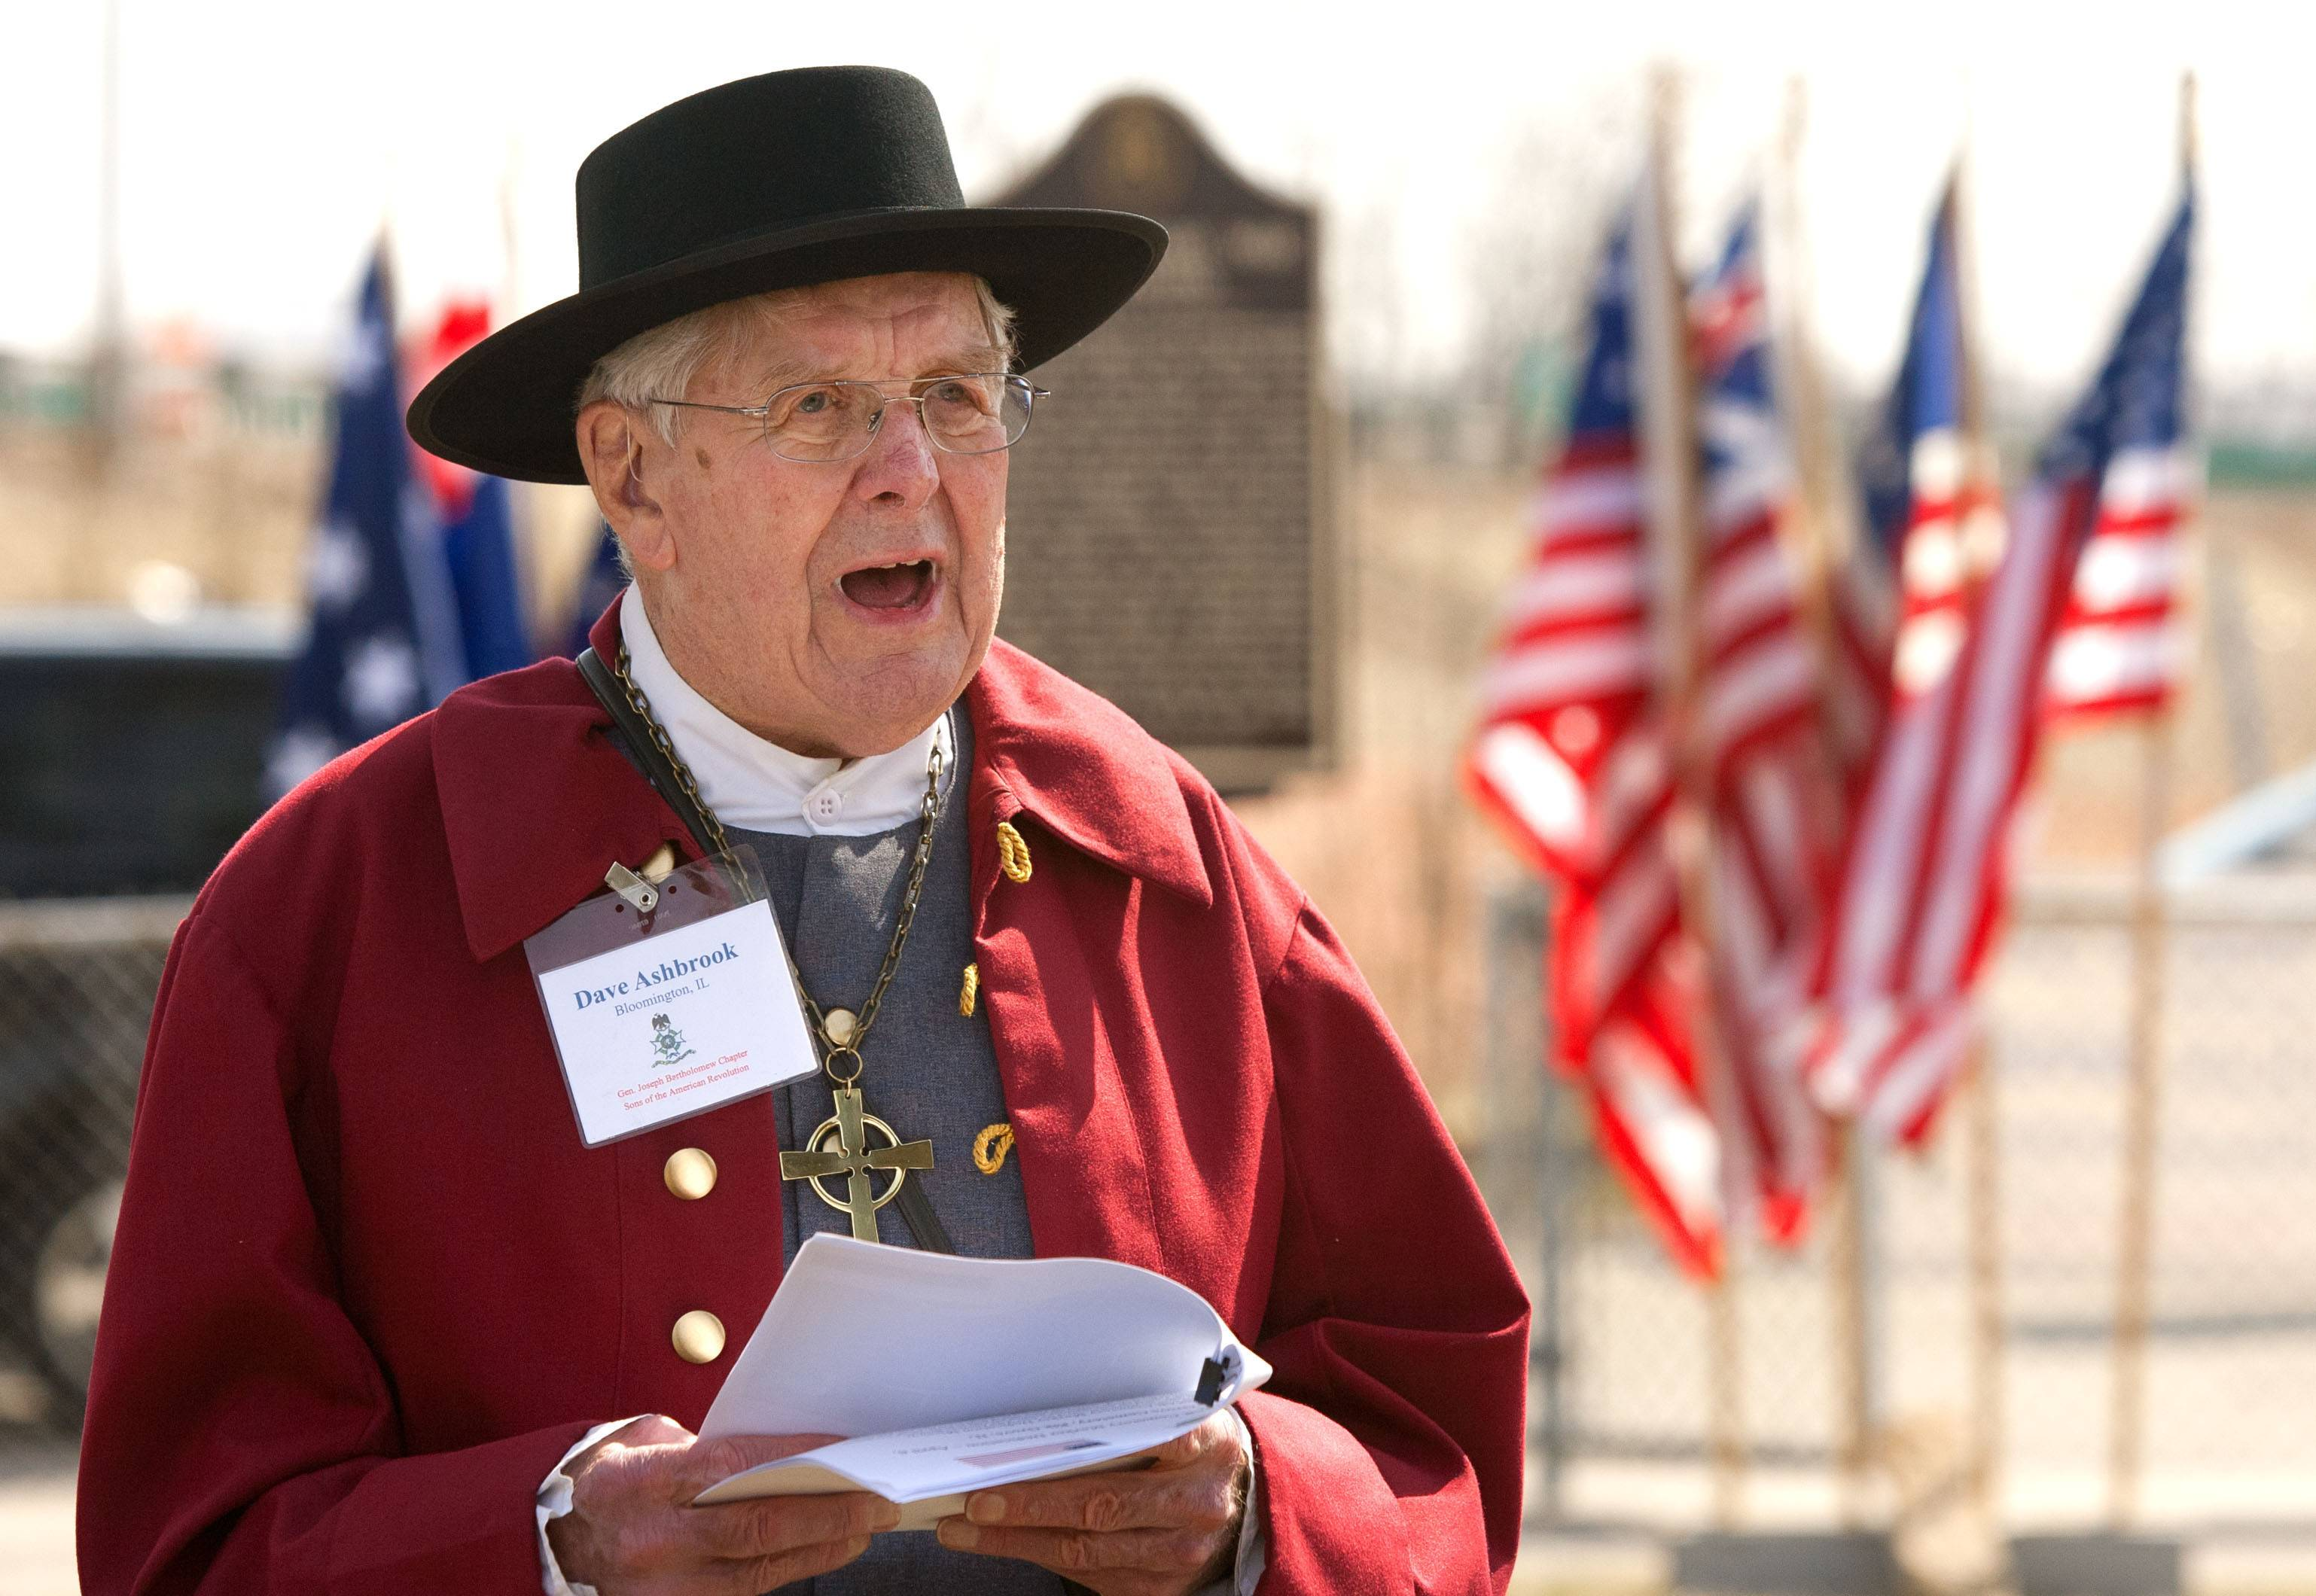 Dave Ashbrook, chaplain of the Illinois Society Sons of the American Revolution, delivers the benediction Sunday during a ceremony dedicating historical markers for two Revolutionary War figures buried at Elk Grove Cemetery.